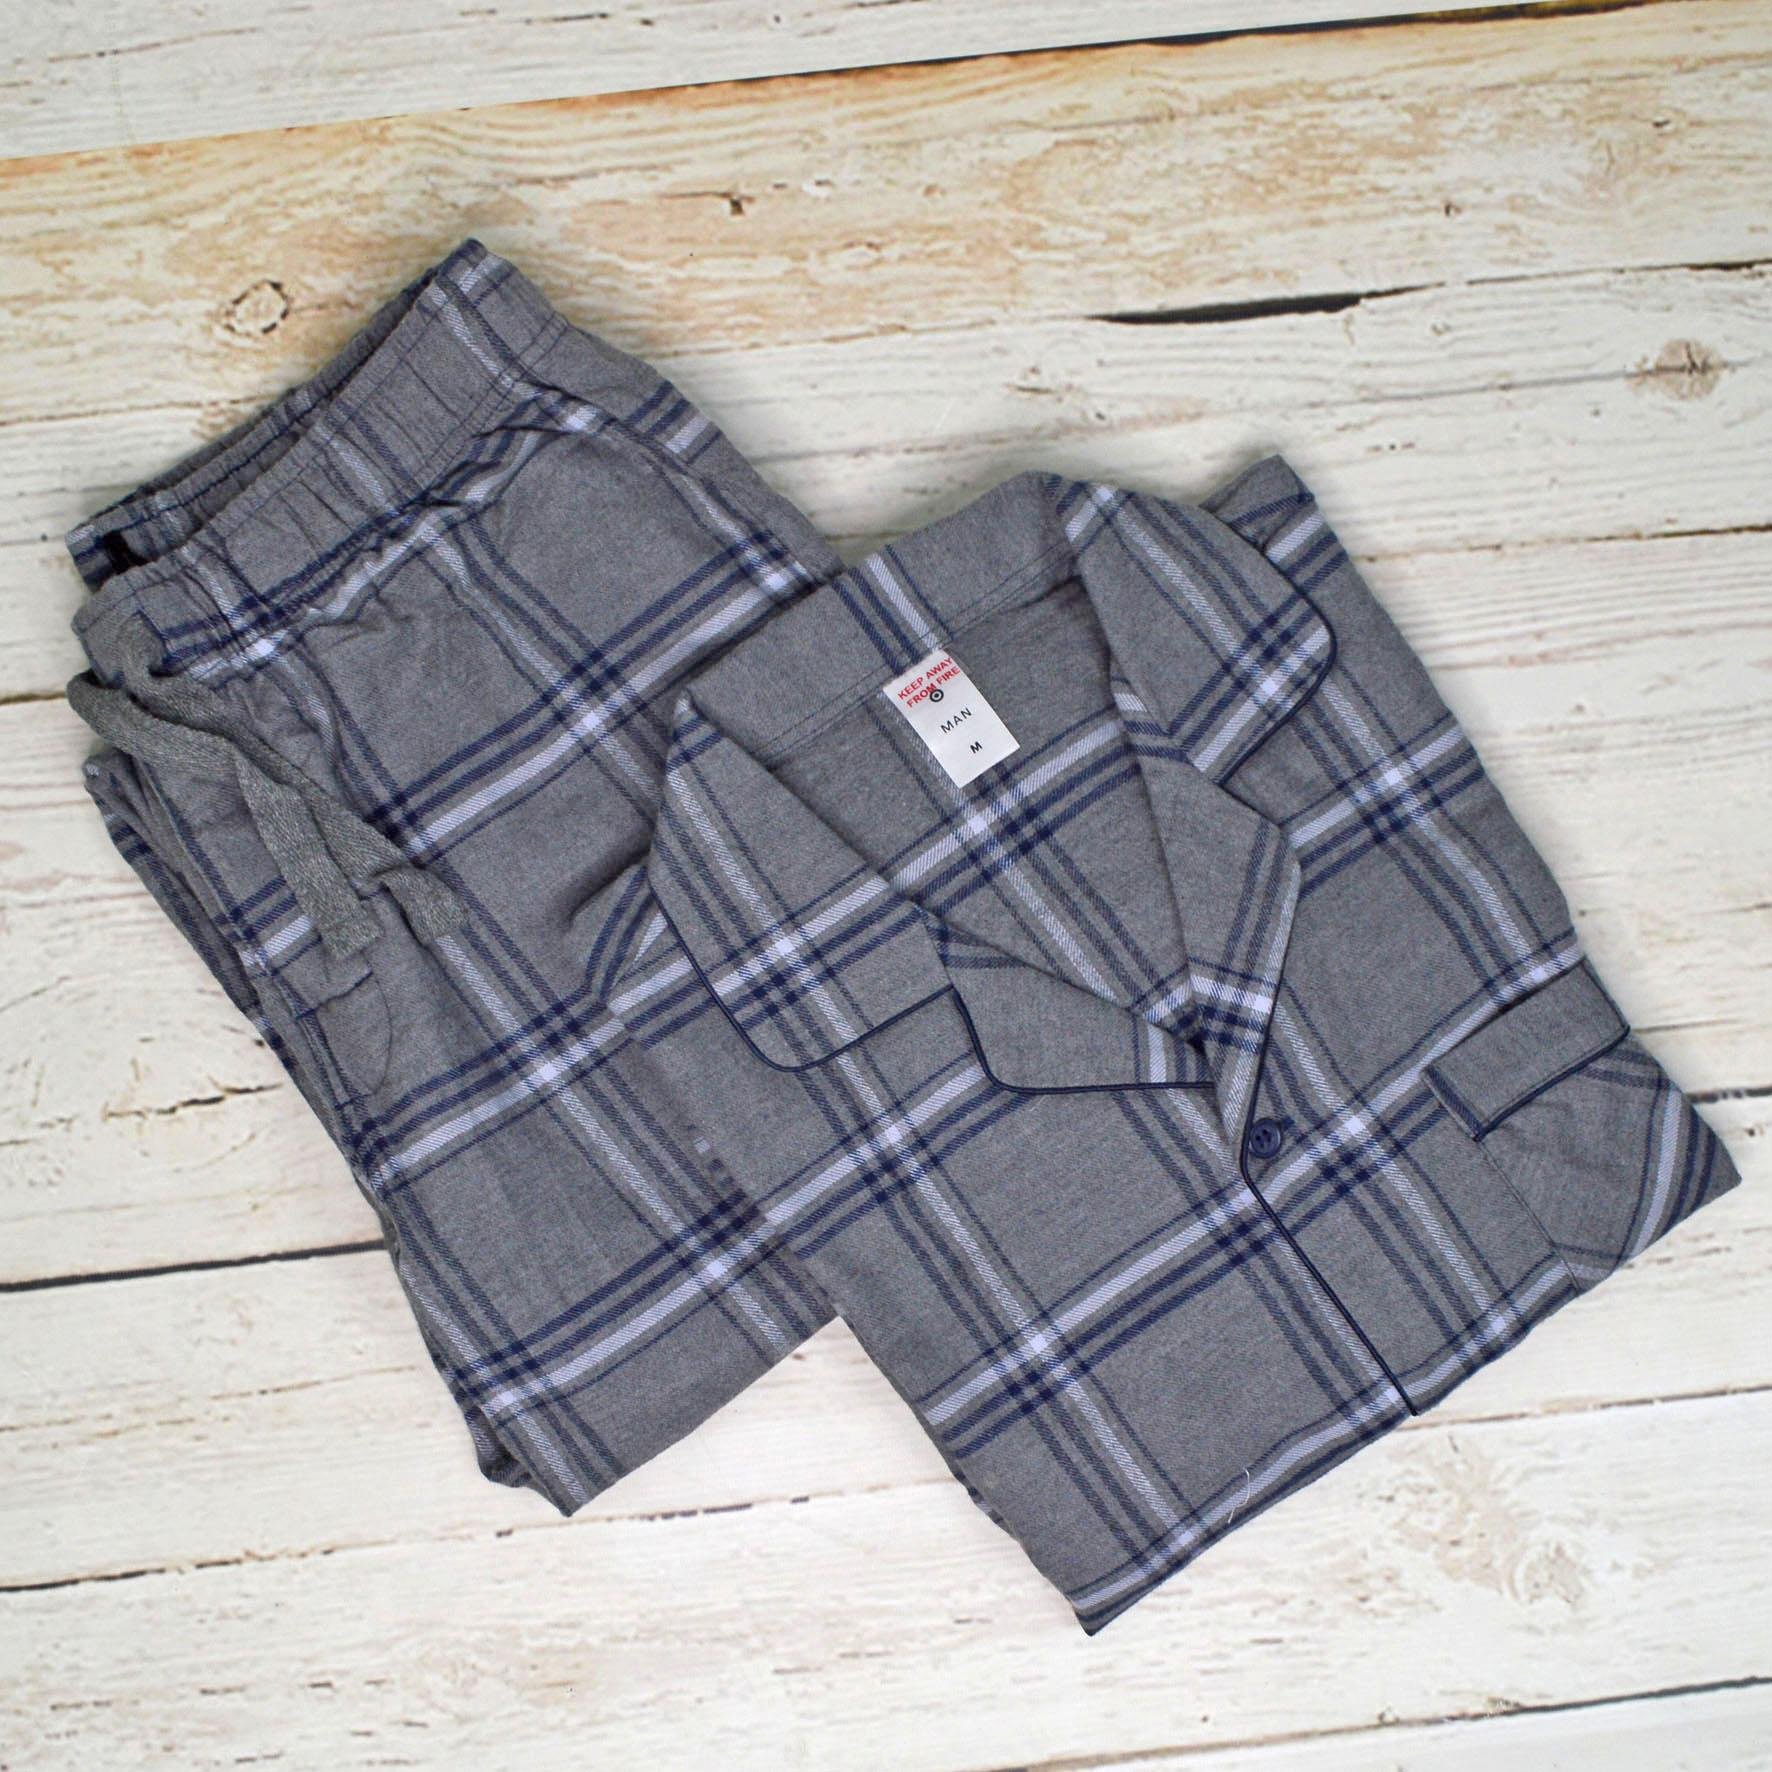 NEW-Mens-Brushed-Pure-Cotton-Check-Pyjamas-Flannelette-PJ-Set-in-Blue-Red-Grey thumbnail 11